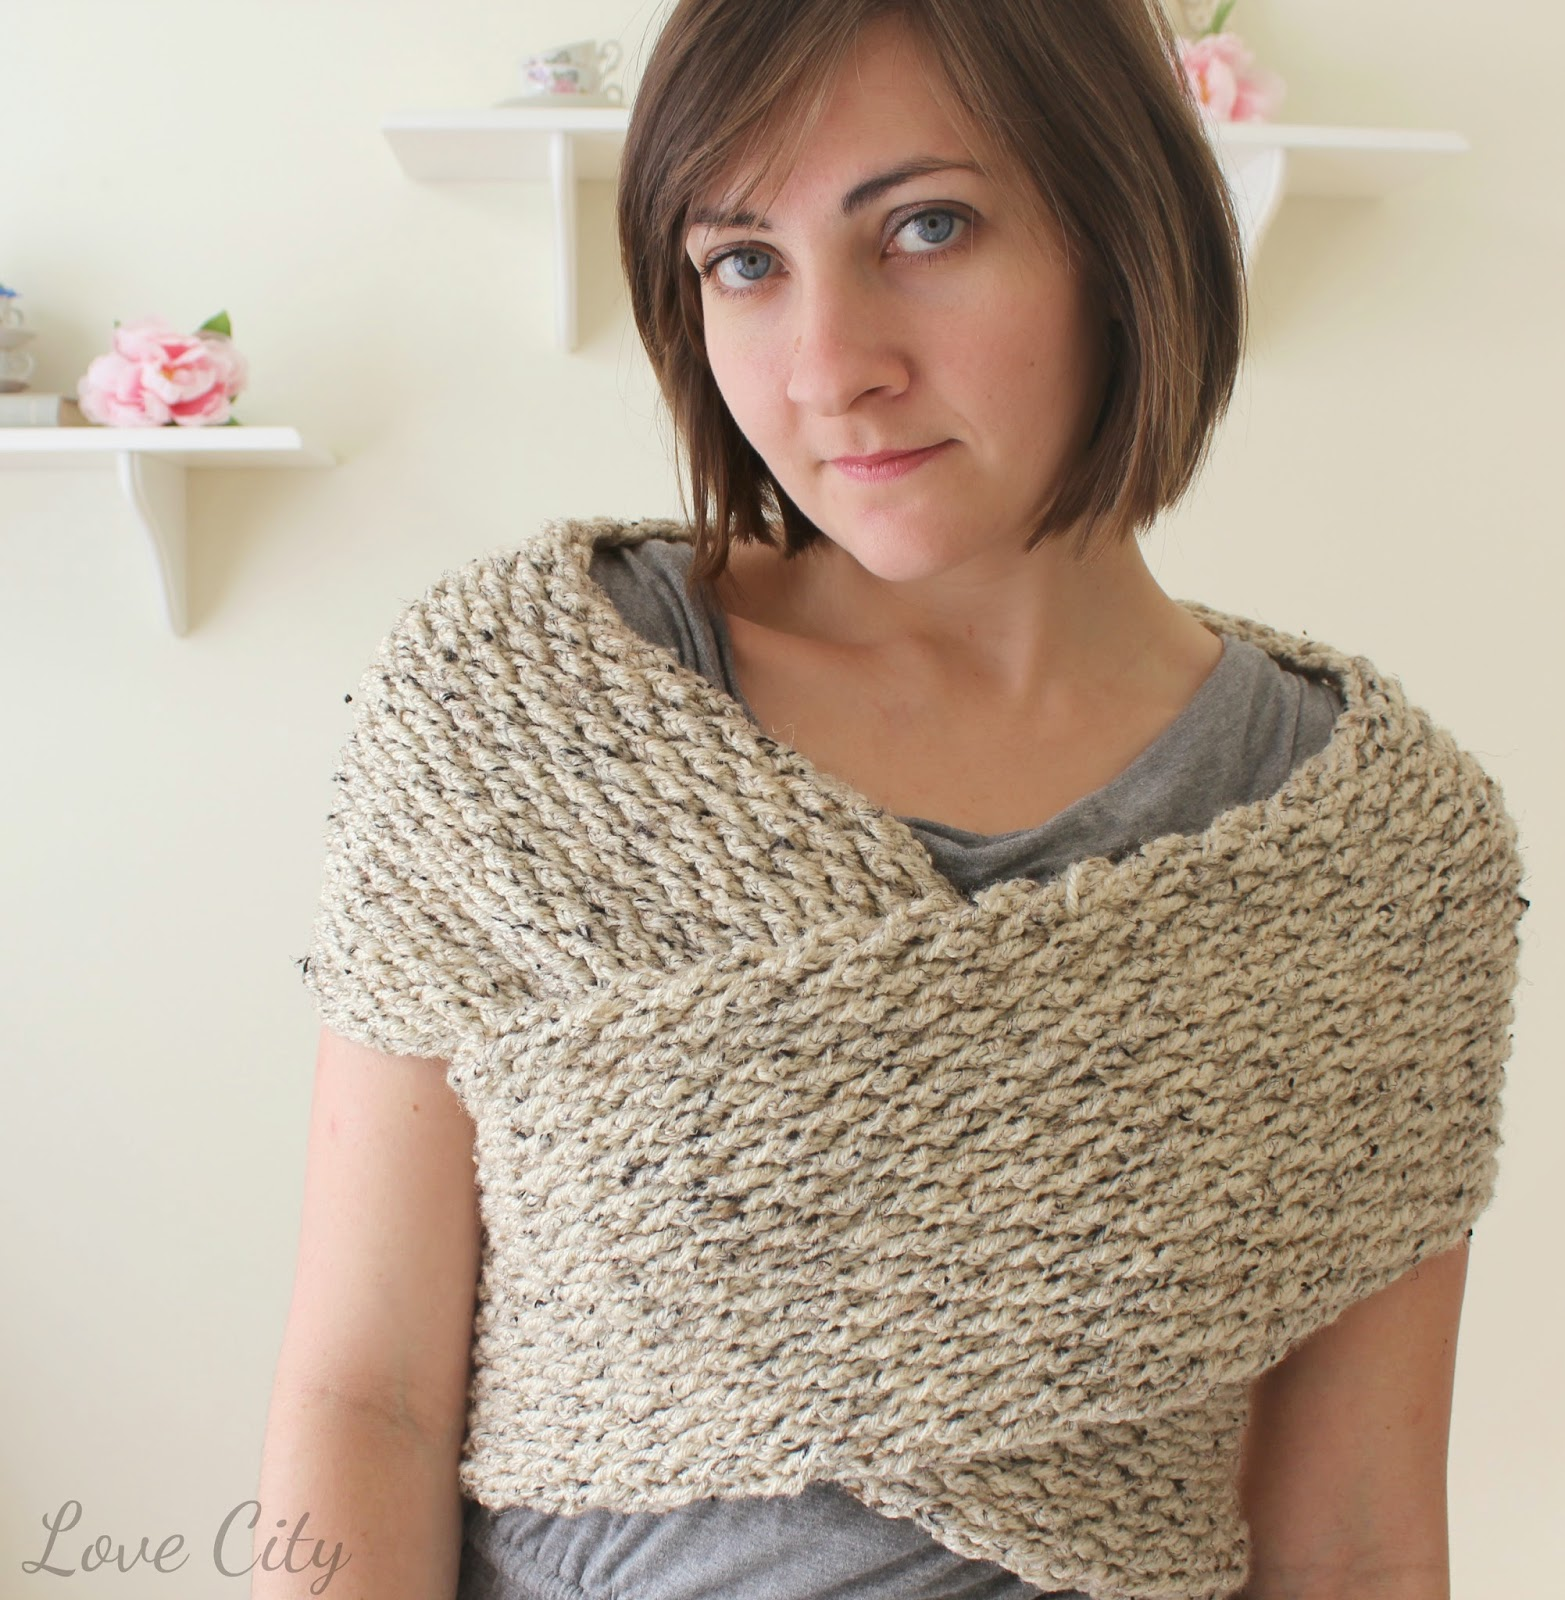 Crochet Wrap : crochet-wrap-sweater-2.jpg